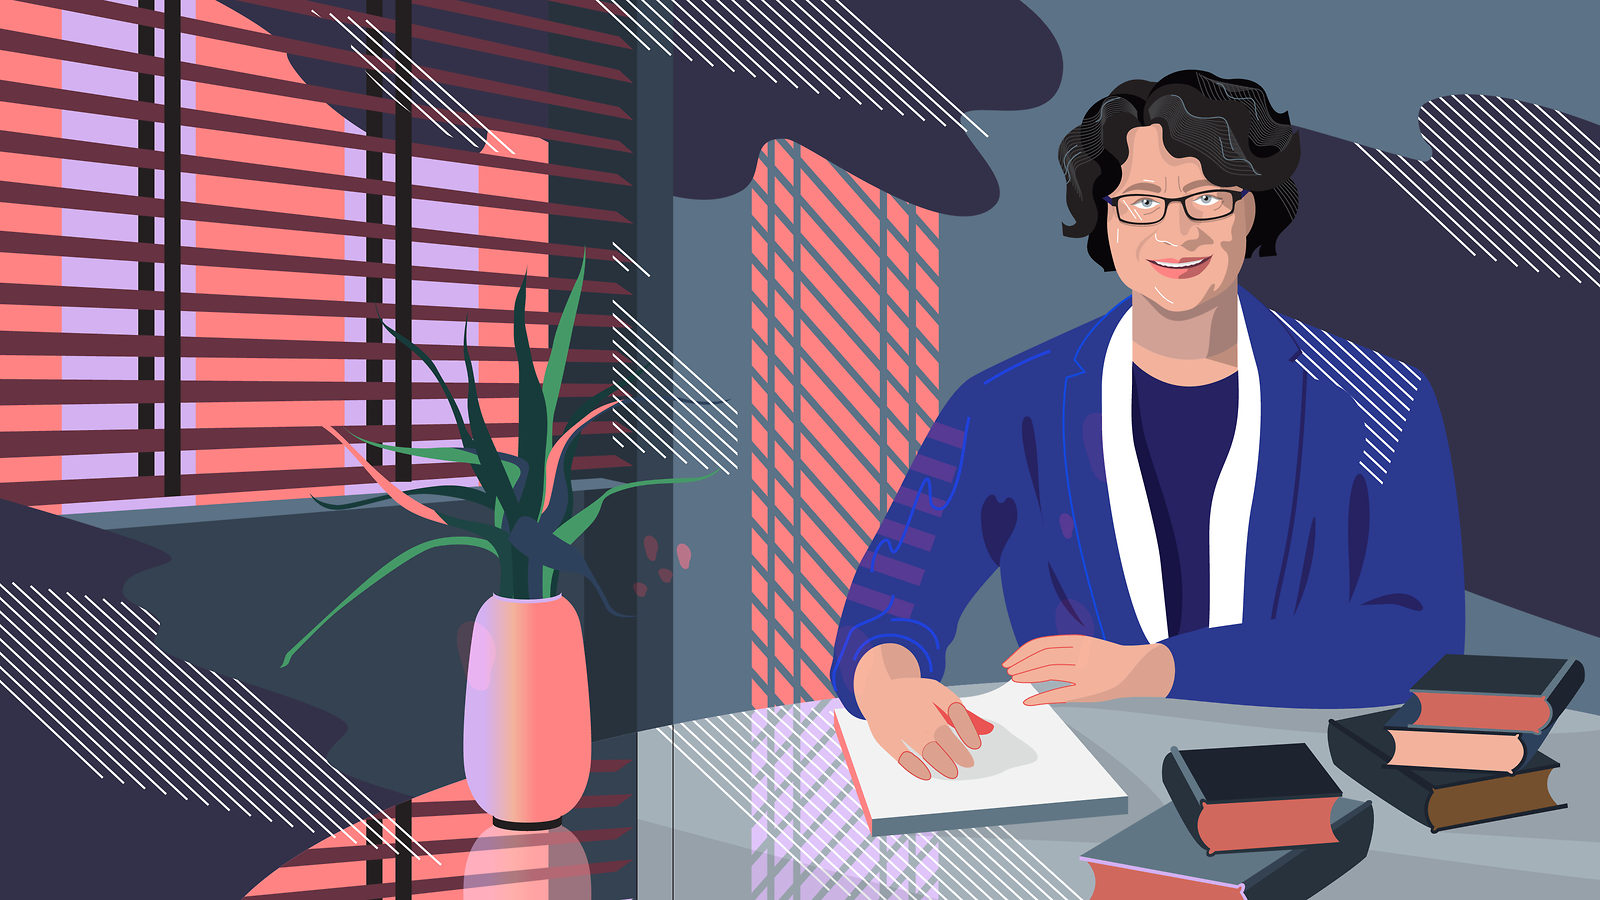 Illustration of Lia Merging seated at a desk